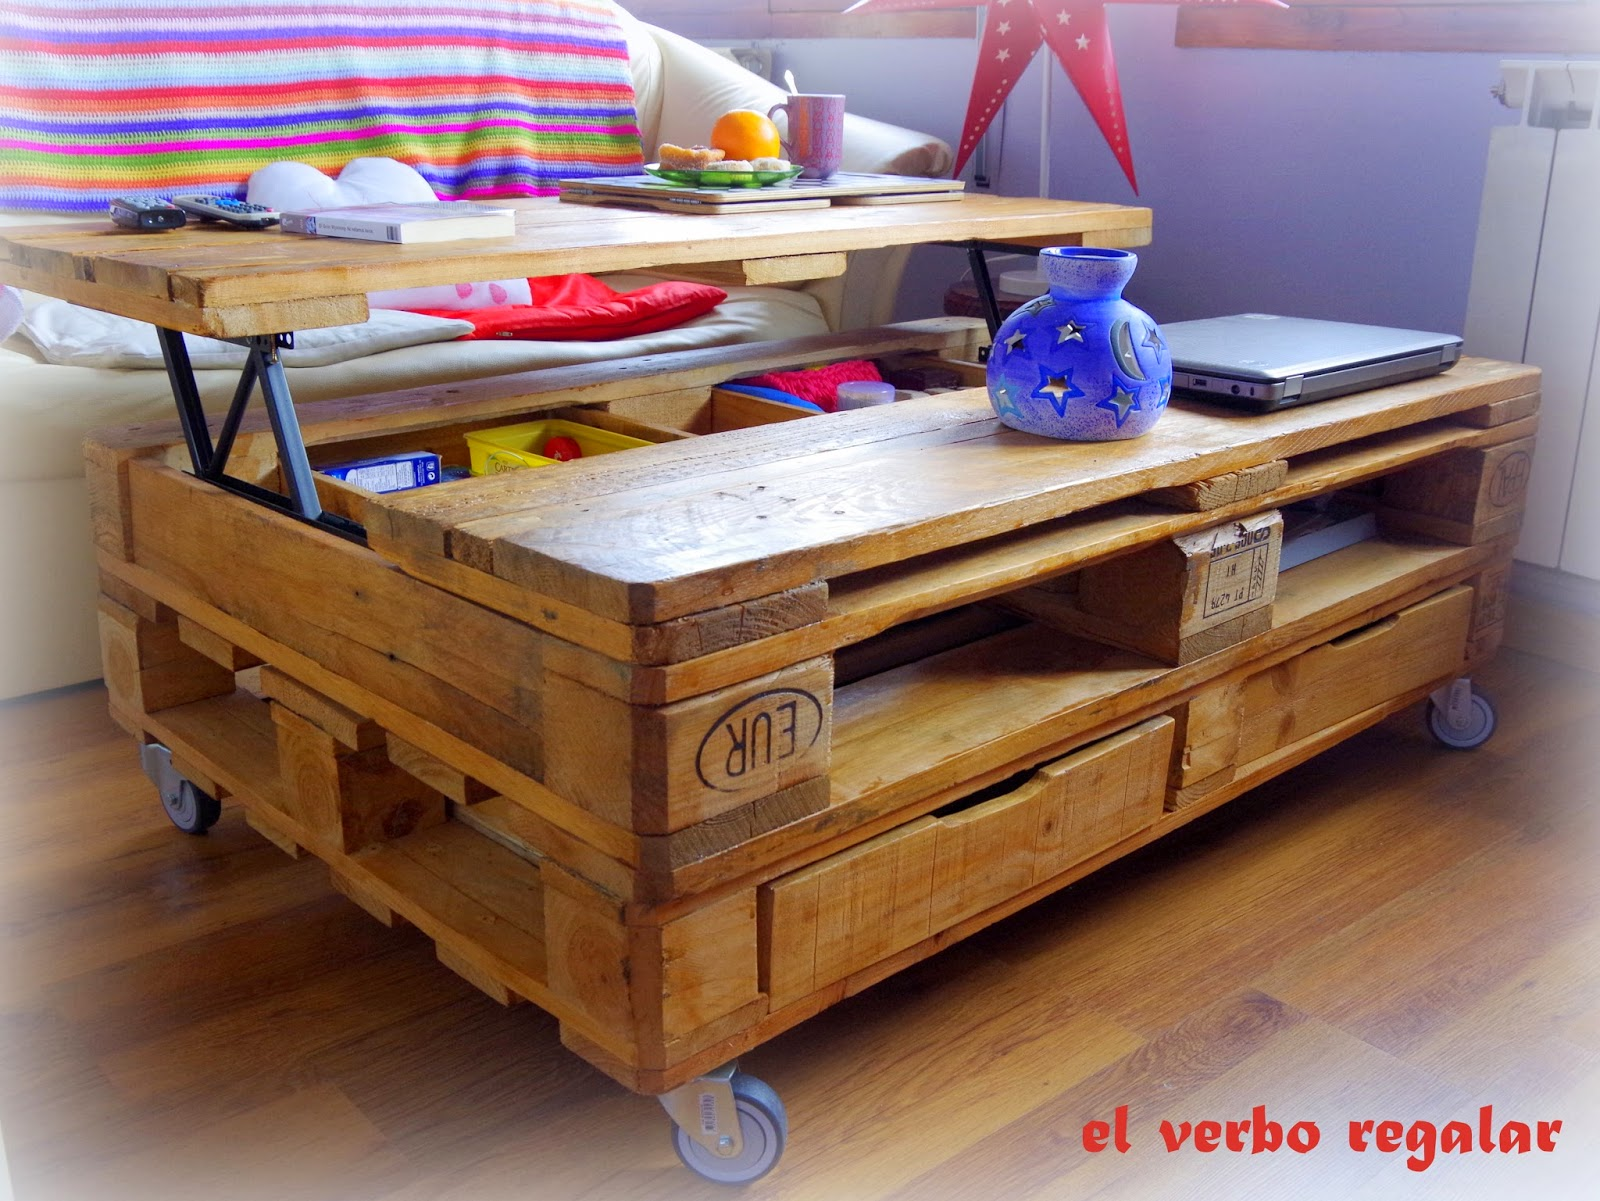 el verbo regalar mesa elevable con palets ideas diy caseras